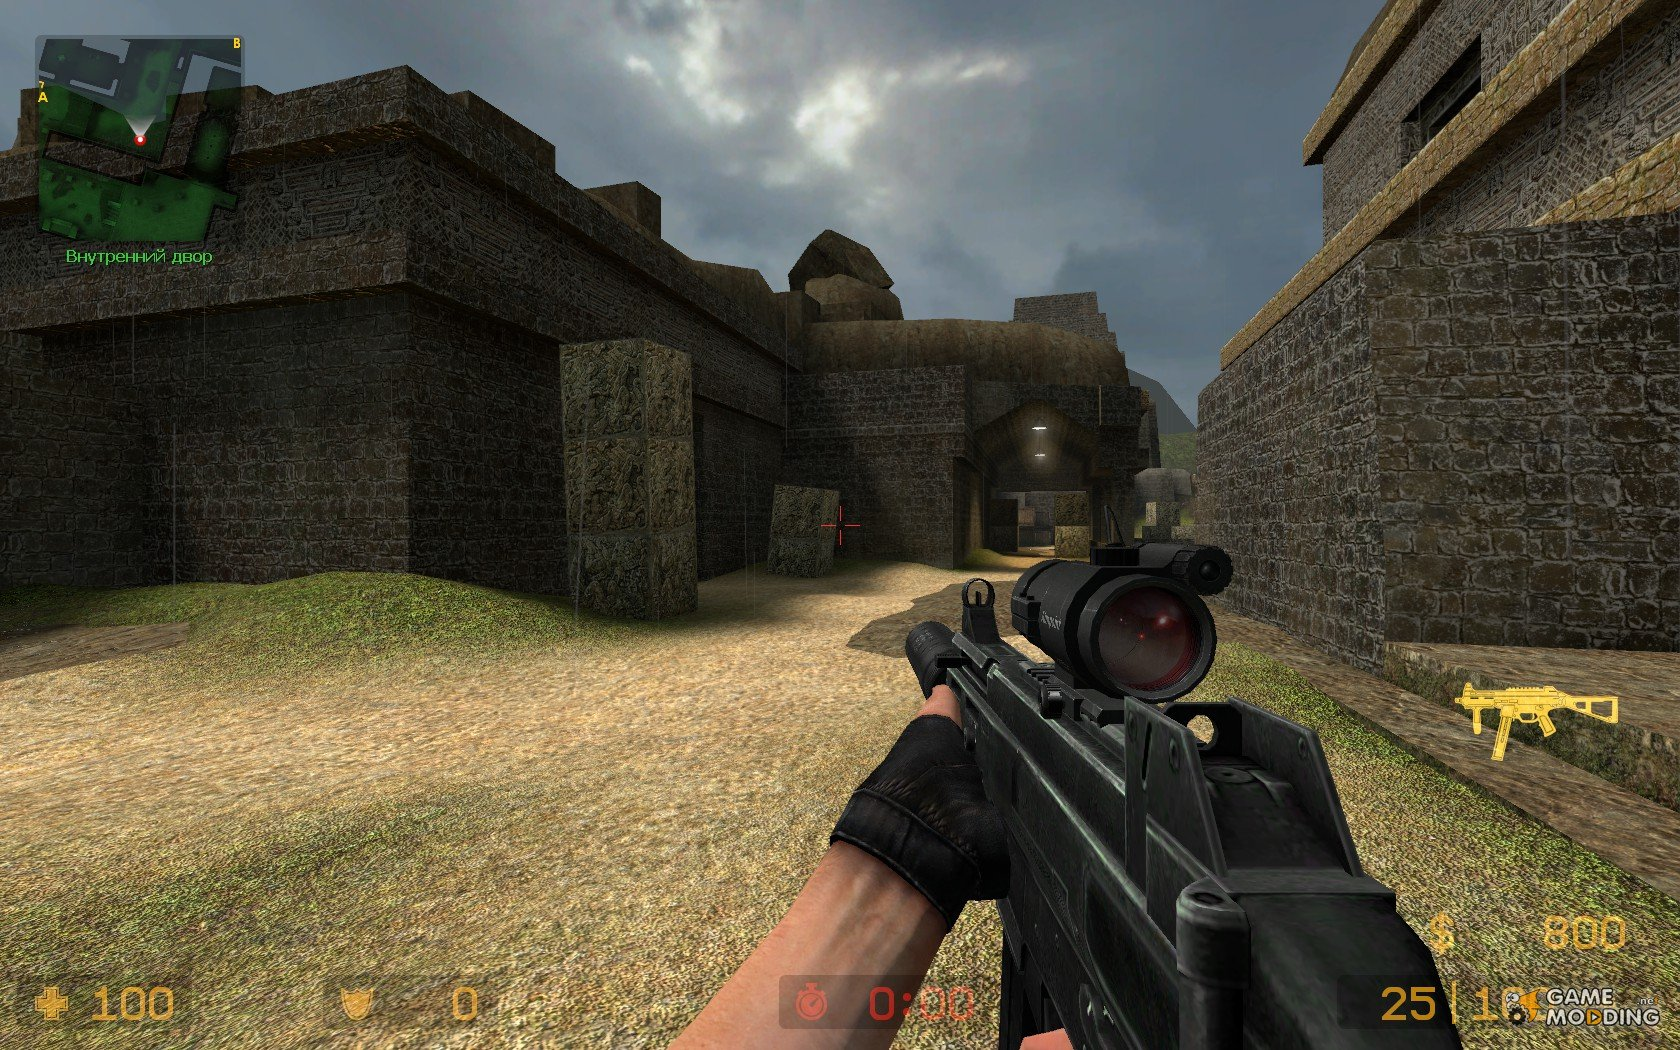 Counter strike nude-patch softcore scene